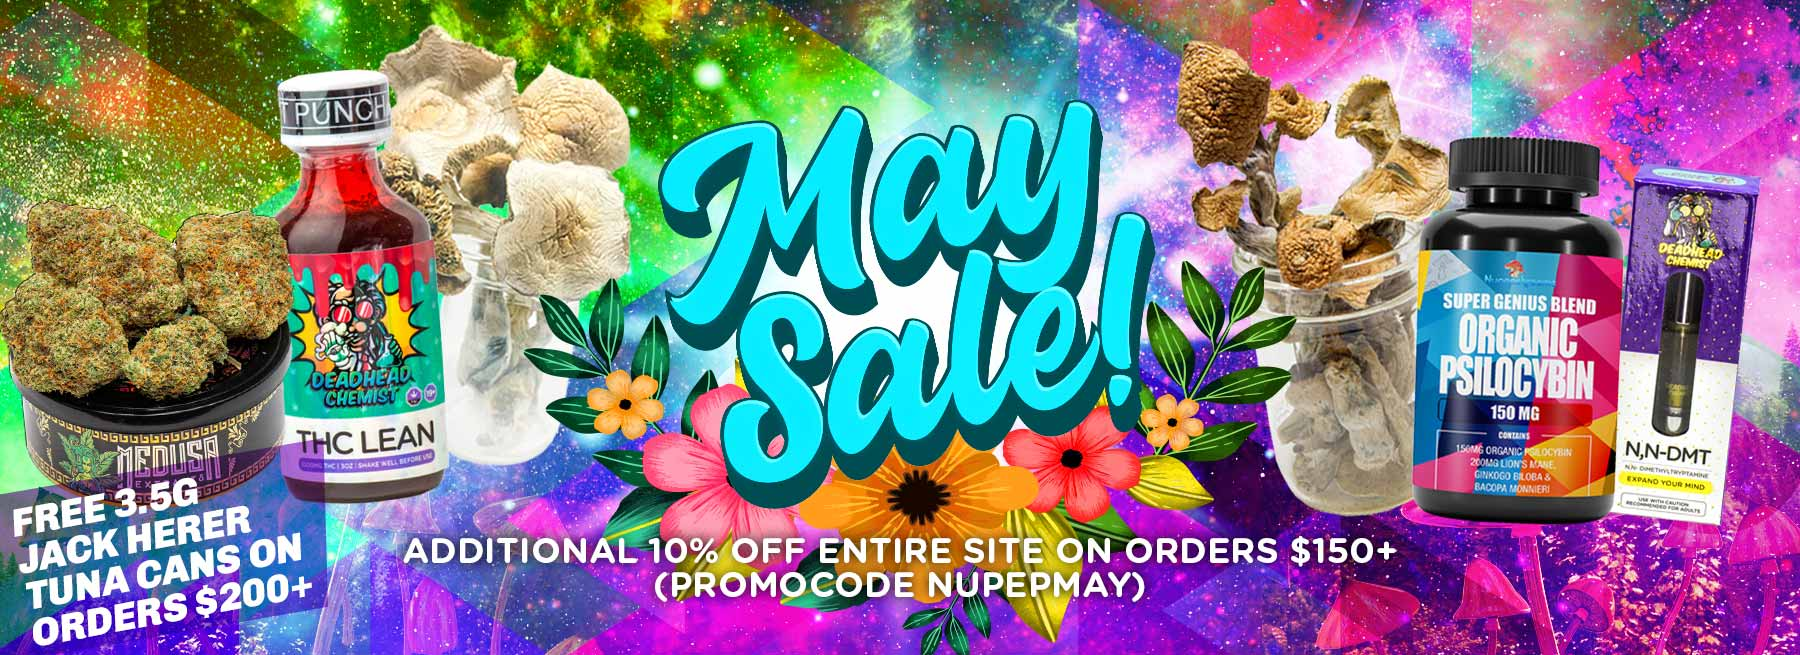 may-2021-sale